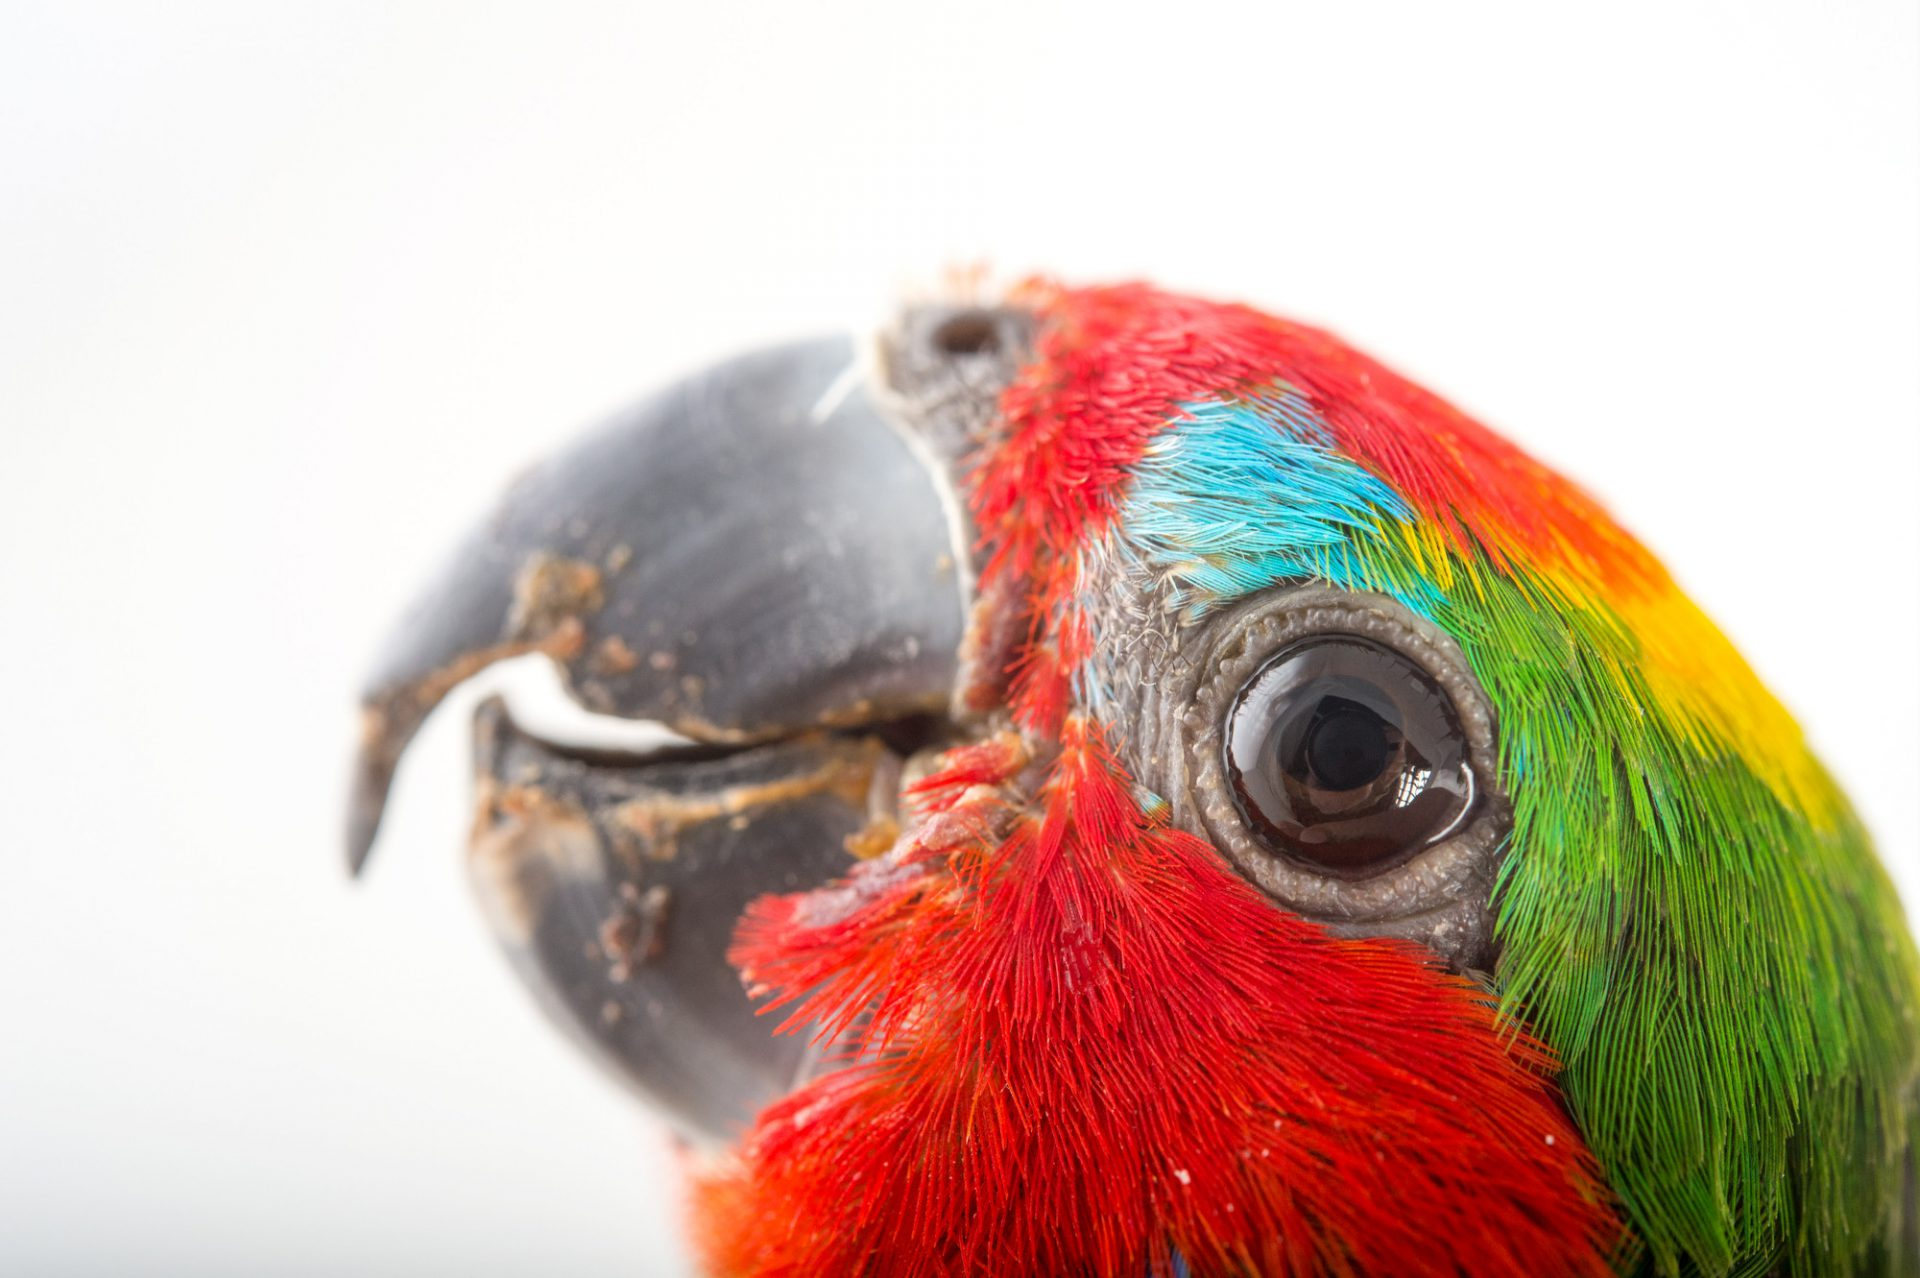 Picture of a double-eyed fig parrot (Cyclopsitta diophthalma) at the Dallas Zoo. The bird's name is Figley.